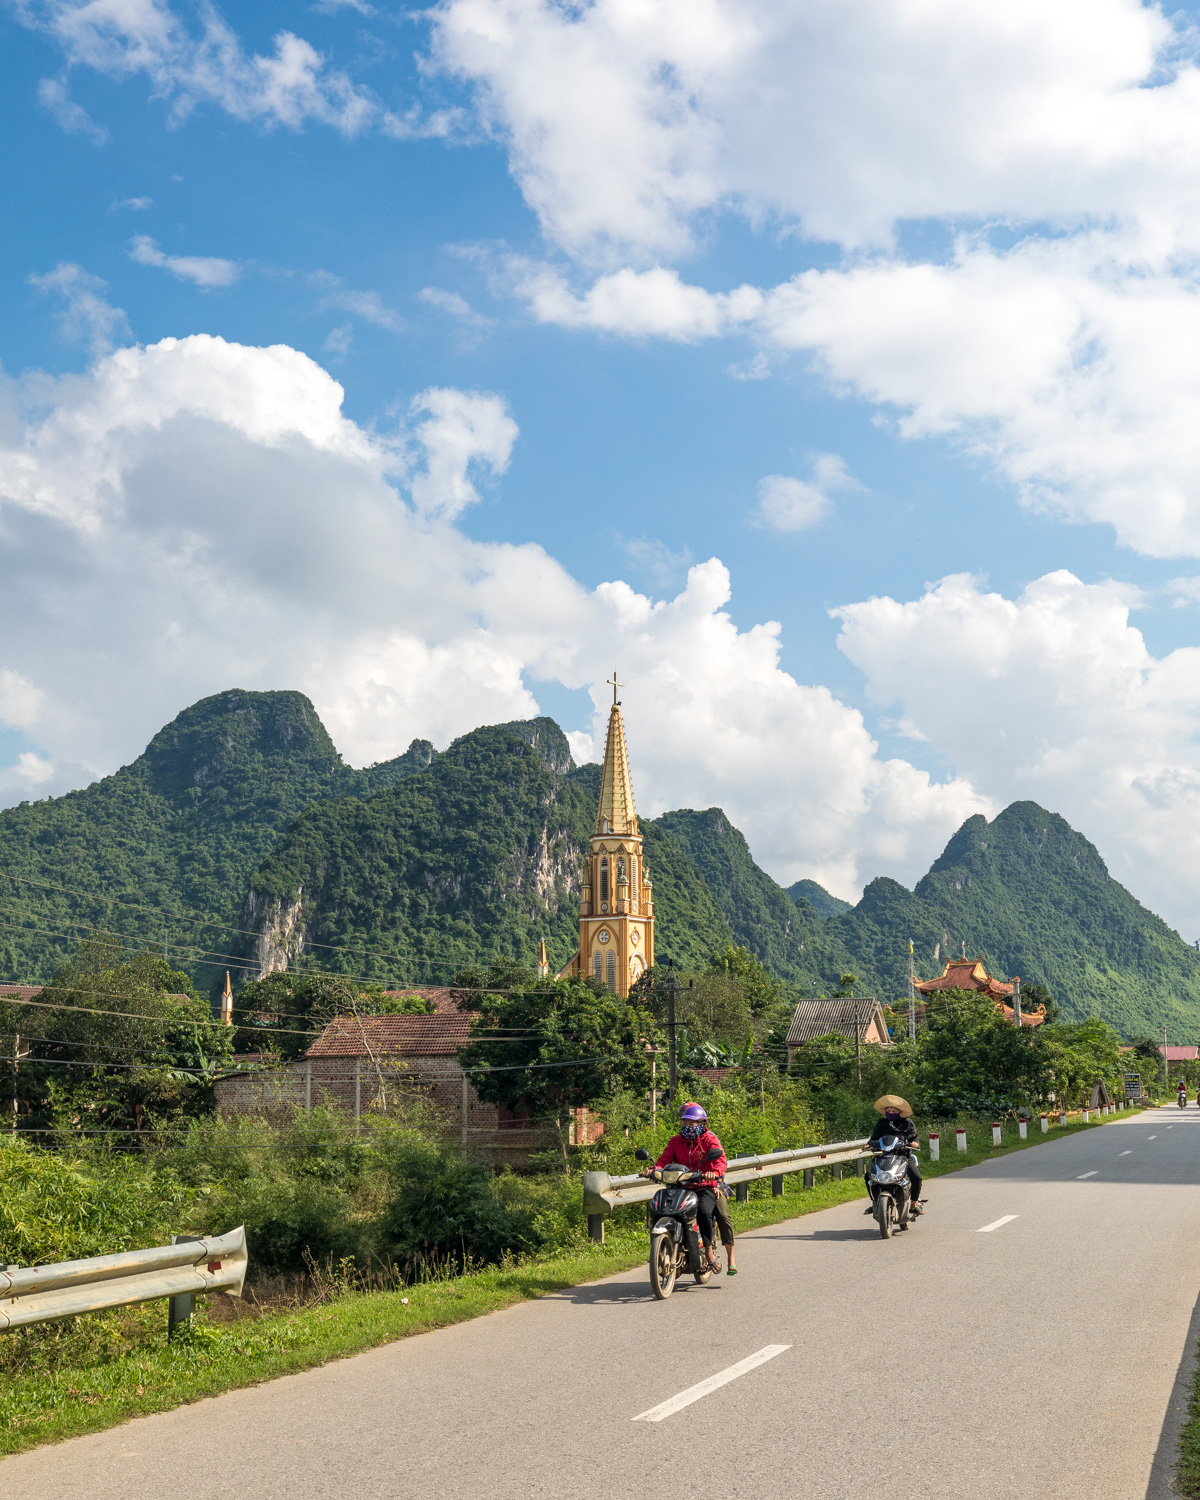 Things to do in Phong Nha - Motorbiking